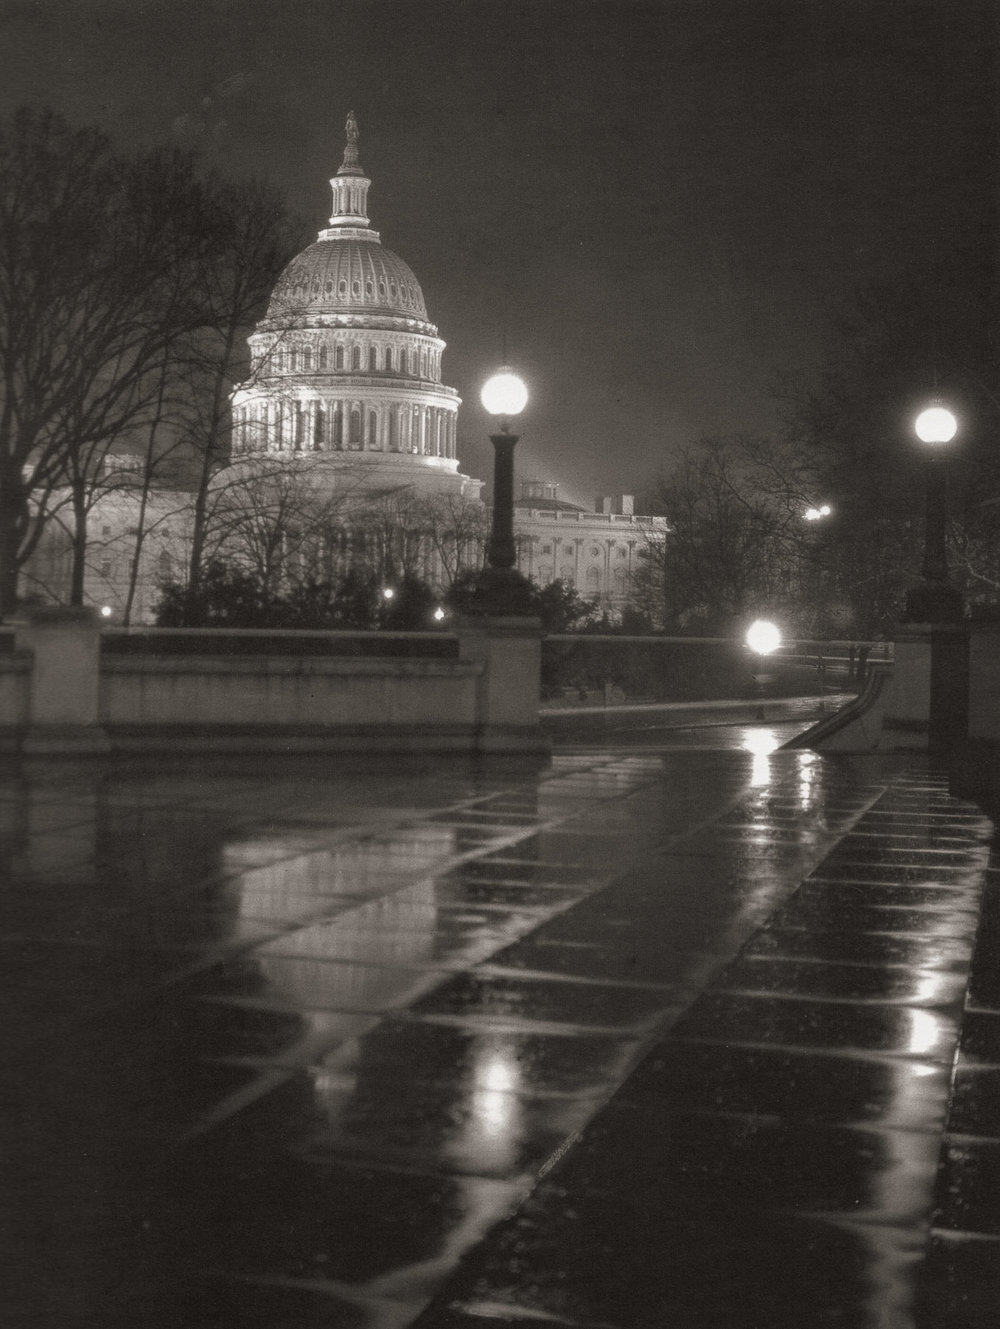 """U.S. Capitol."" Shot on a rainy night, the squares in the plaza reflect a darker side of the dome of the Capitol. There is a great irony in our majestic Capitol building–– the finial atop the dome is a nearly 20-foot statue of a woman titled ""Freedom,"" designed by sculptor Thomas Crawford, and cast in bronze by slave labor in 1863."